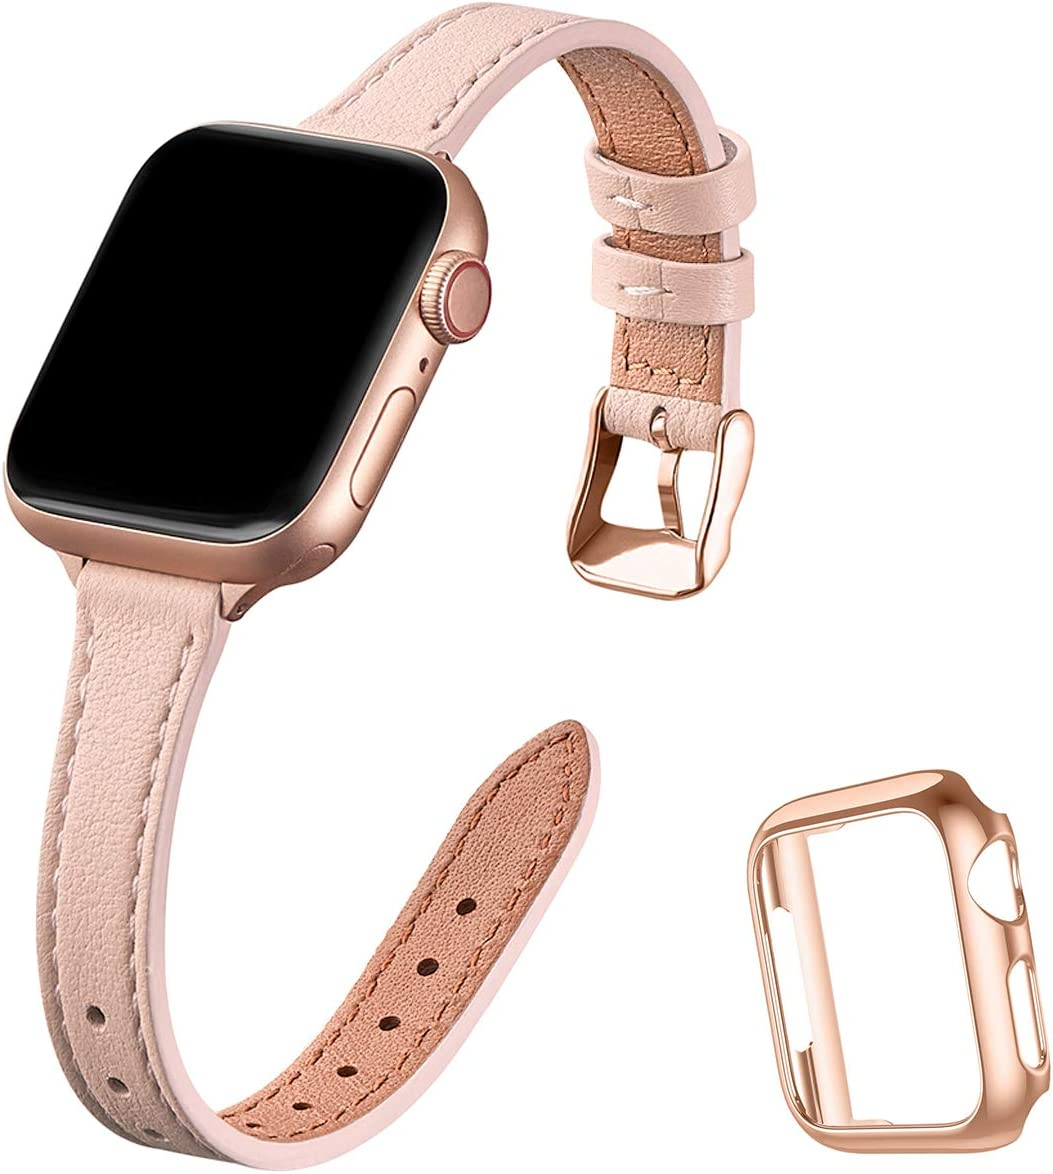 STIROLL Slim Leather Bands Compatible with Apple Watch Band 38mm 40mm 42mm 44mm, Top Grain Leather Watch Thin Wristband for iWatch SE Series 6/5/4/3/2/1 (Pale pink with Rose Gold, 38mm/40mm)